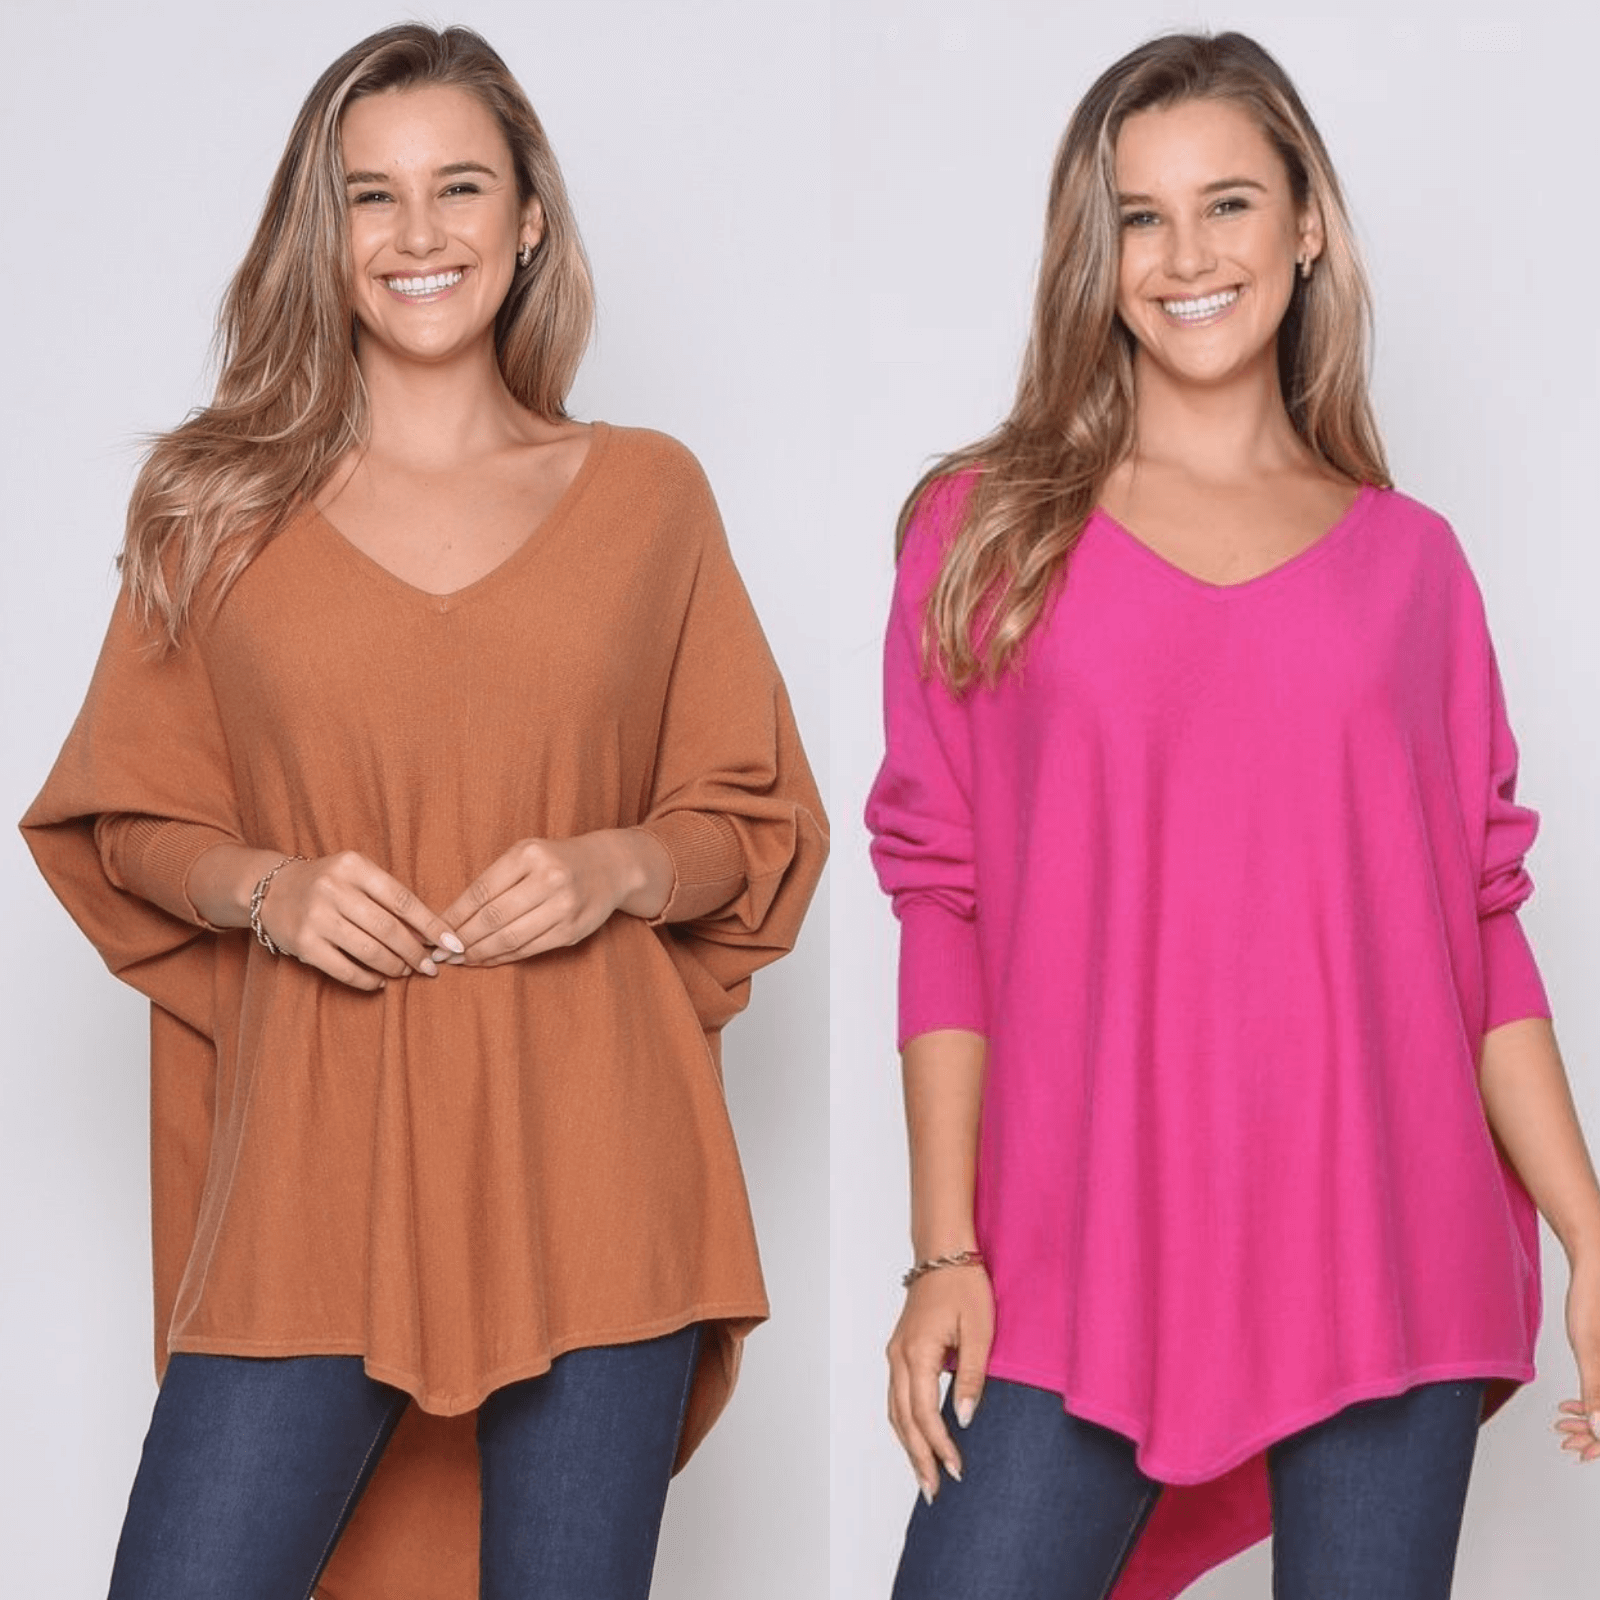 Two Zali Knit Top Bundle - Caramel and Fuschia